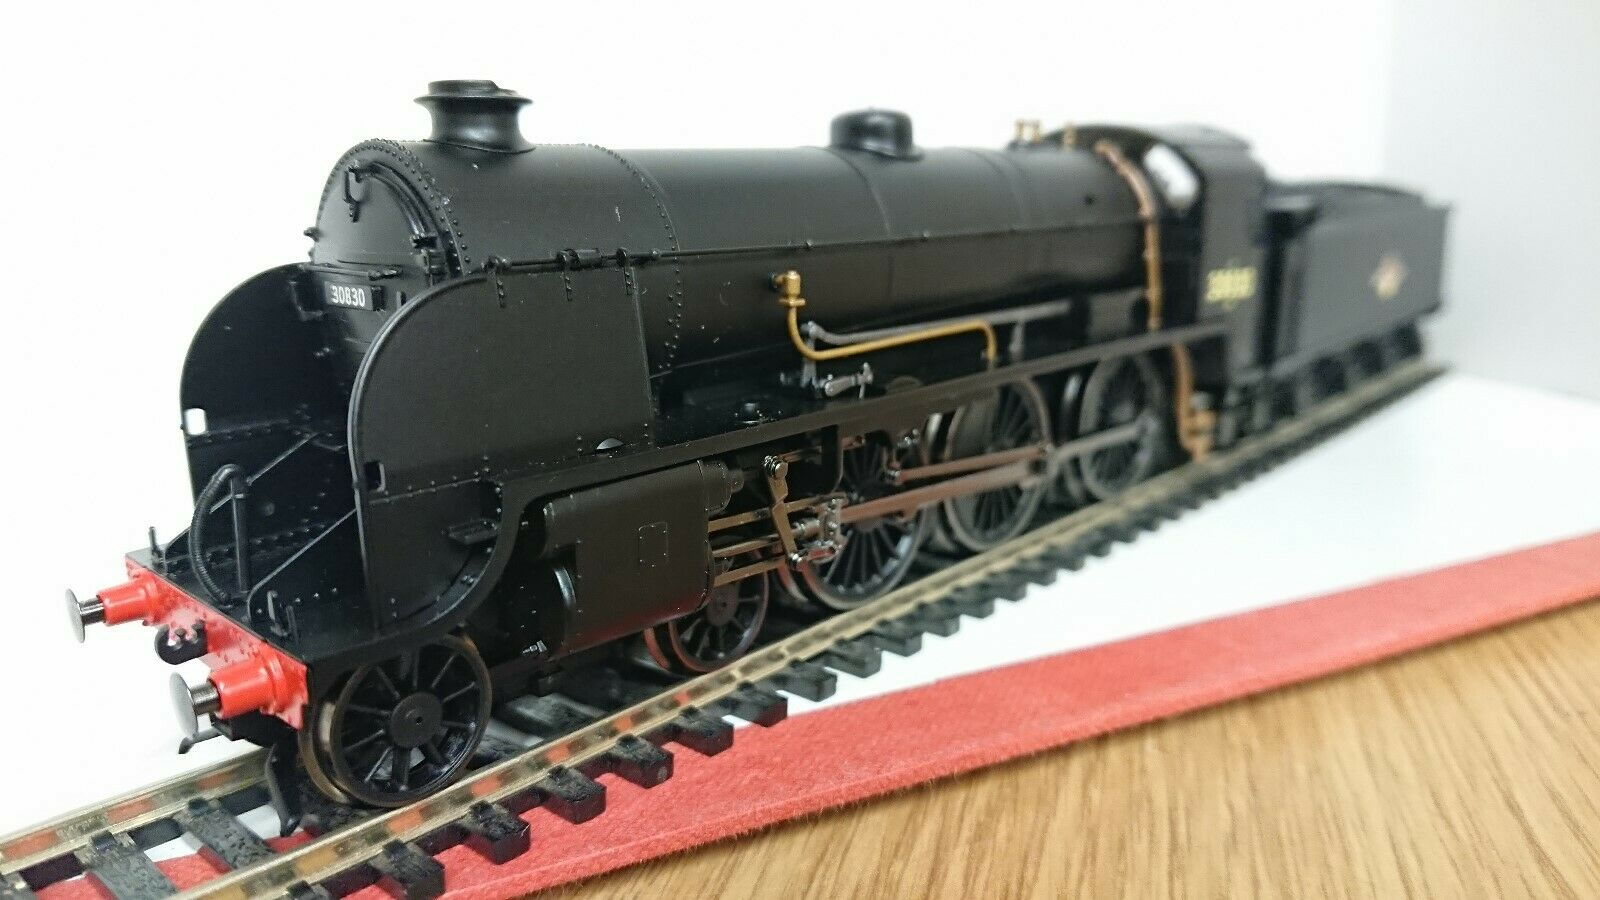 Hornby R3329 BR (Late) S15 Class No. 30830  DCC Ready